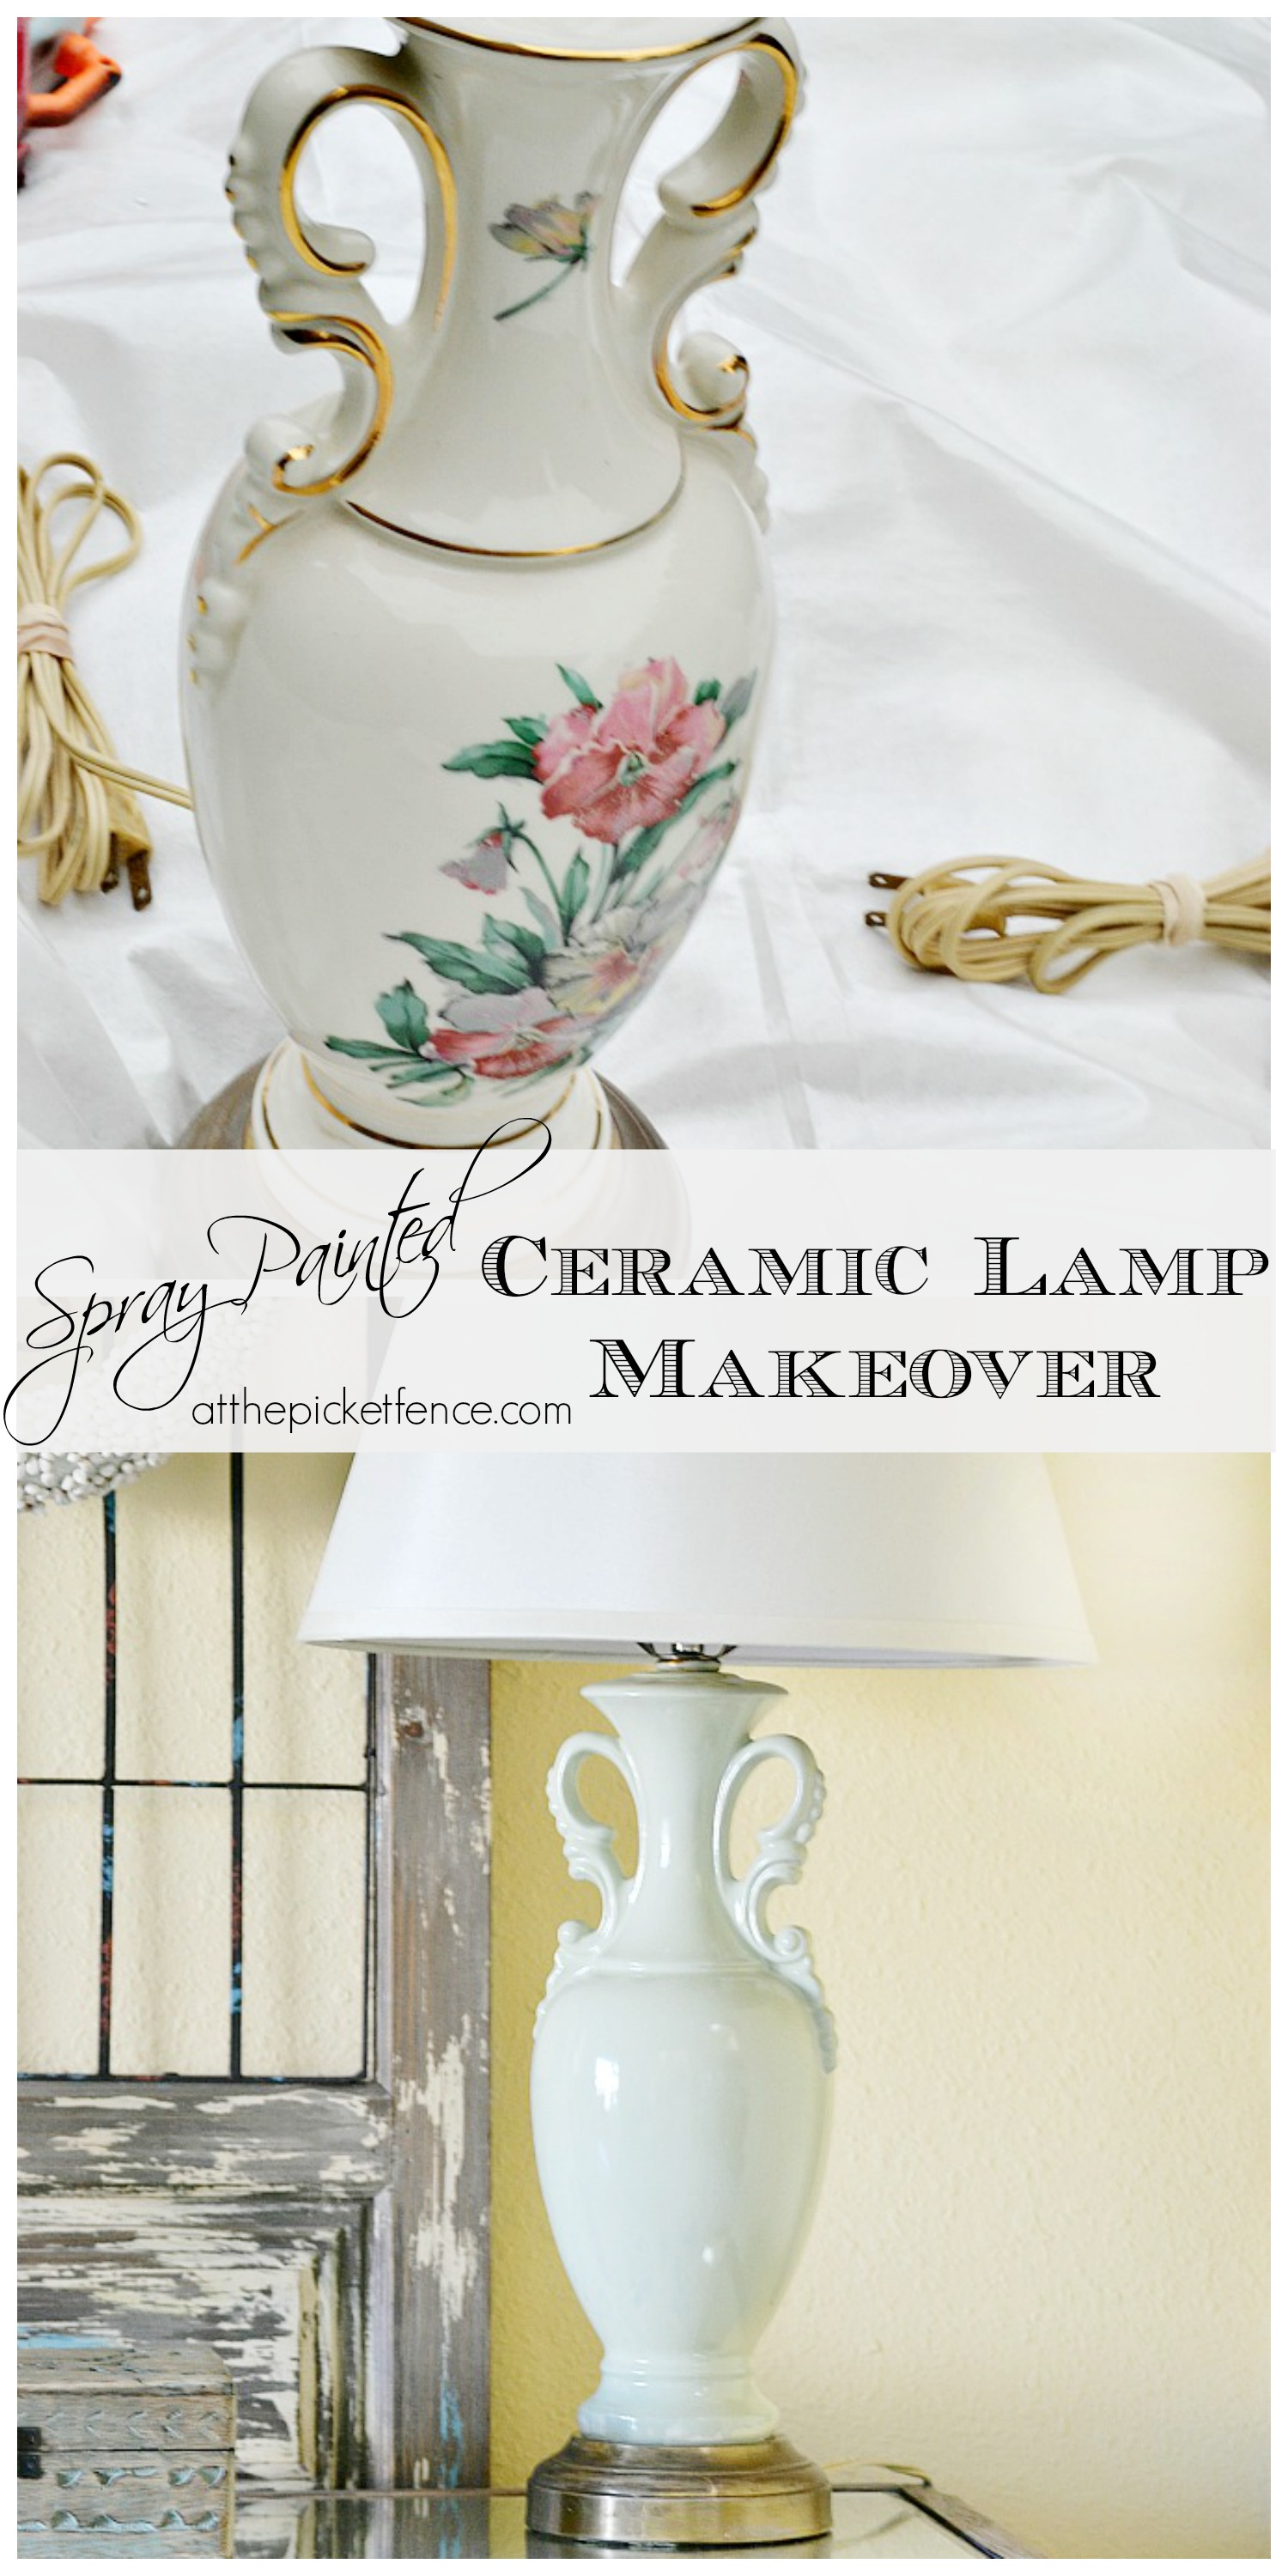 Spray Painted Ceramic Lamps & Thank You Bonnie Seymour